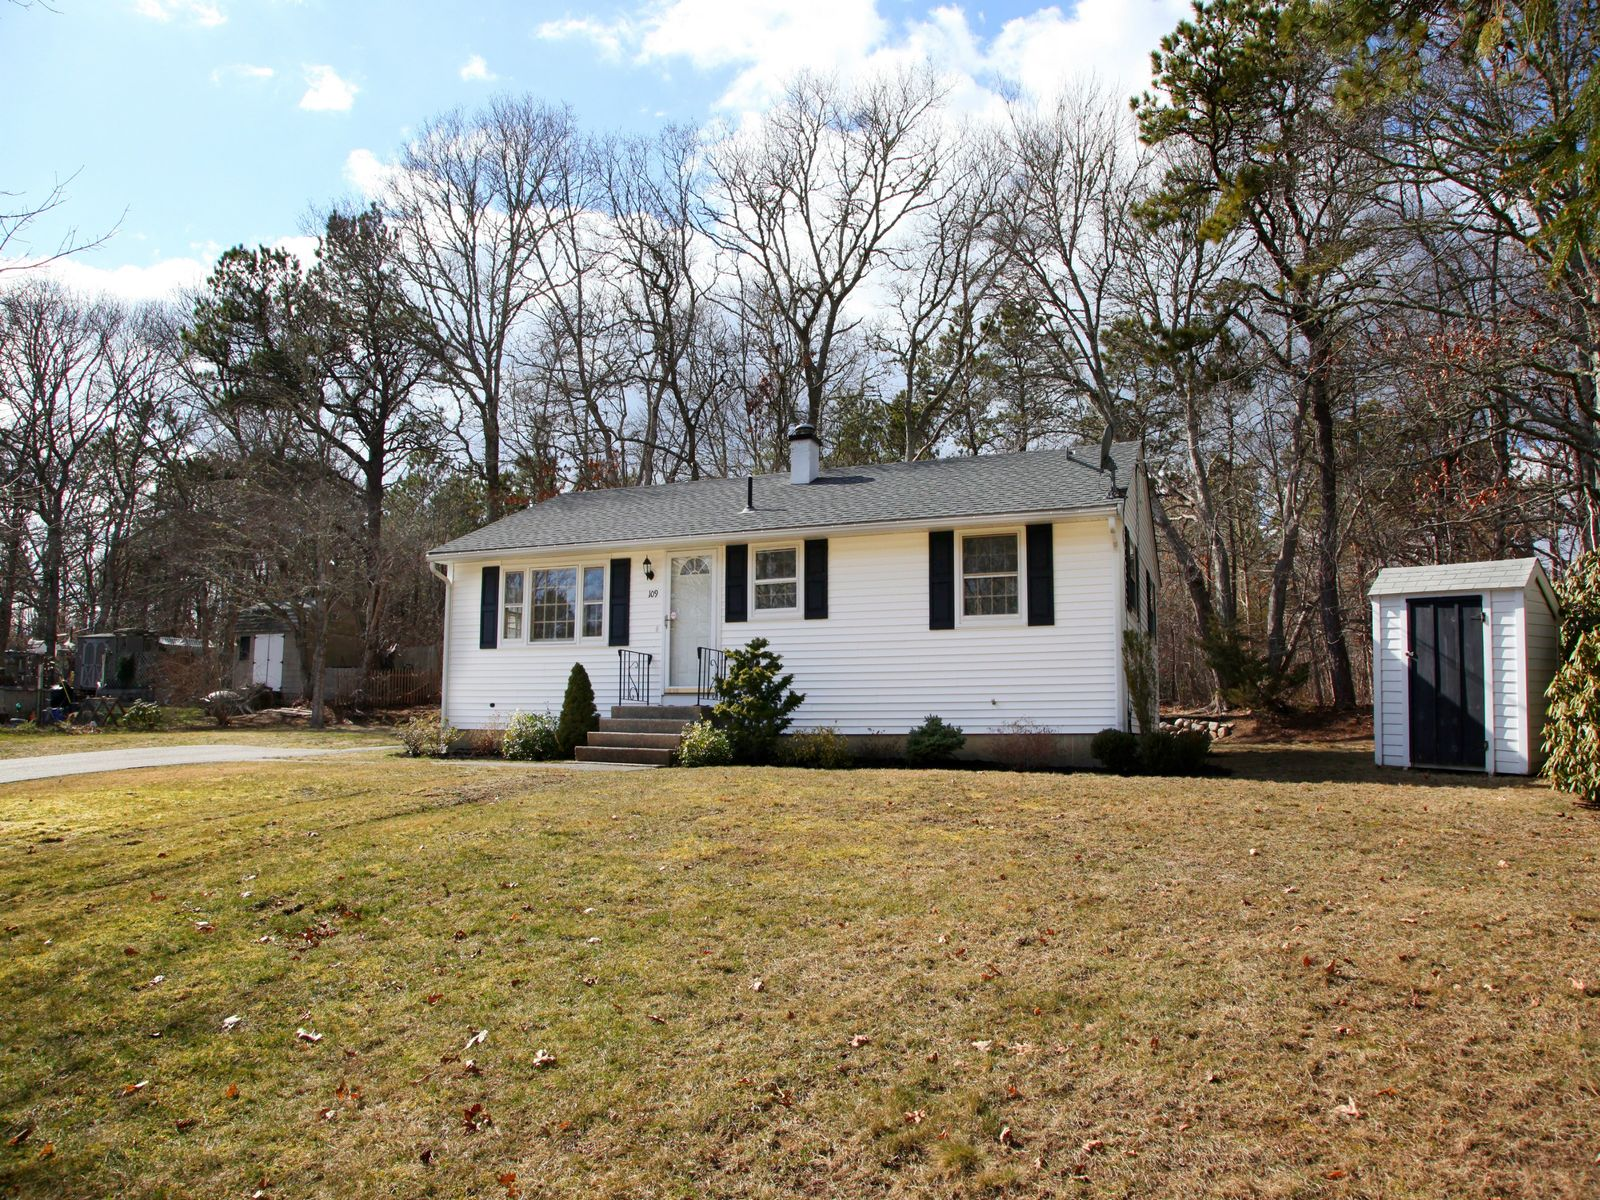 Sweet Ranch with Privacy, East Falmouth MA Single Family Home - Cape Cod Real Estate